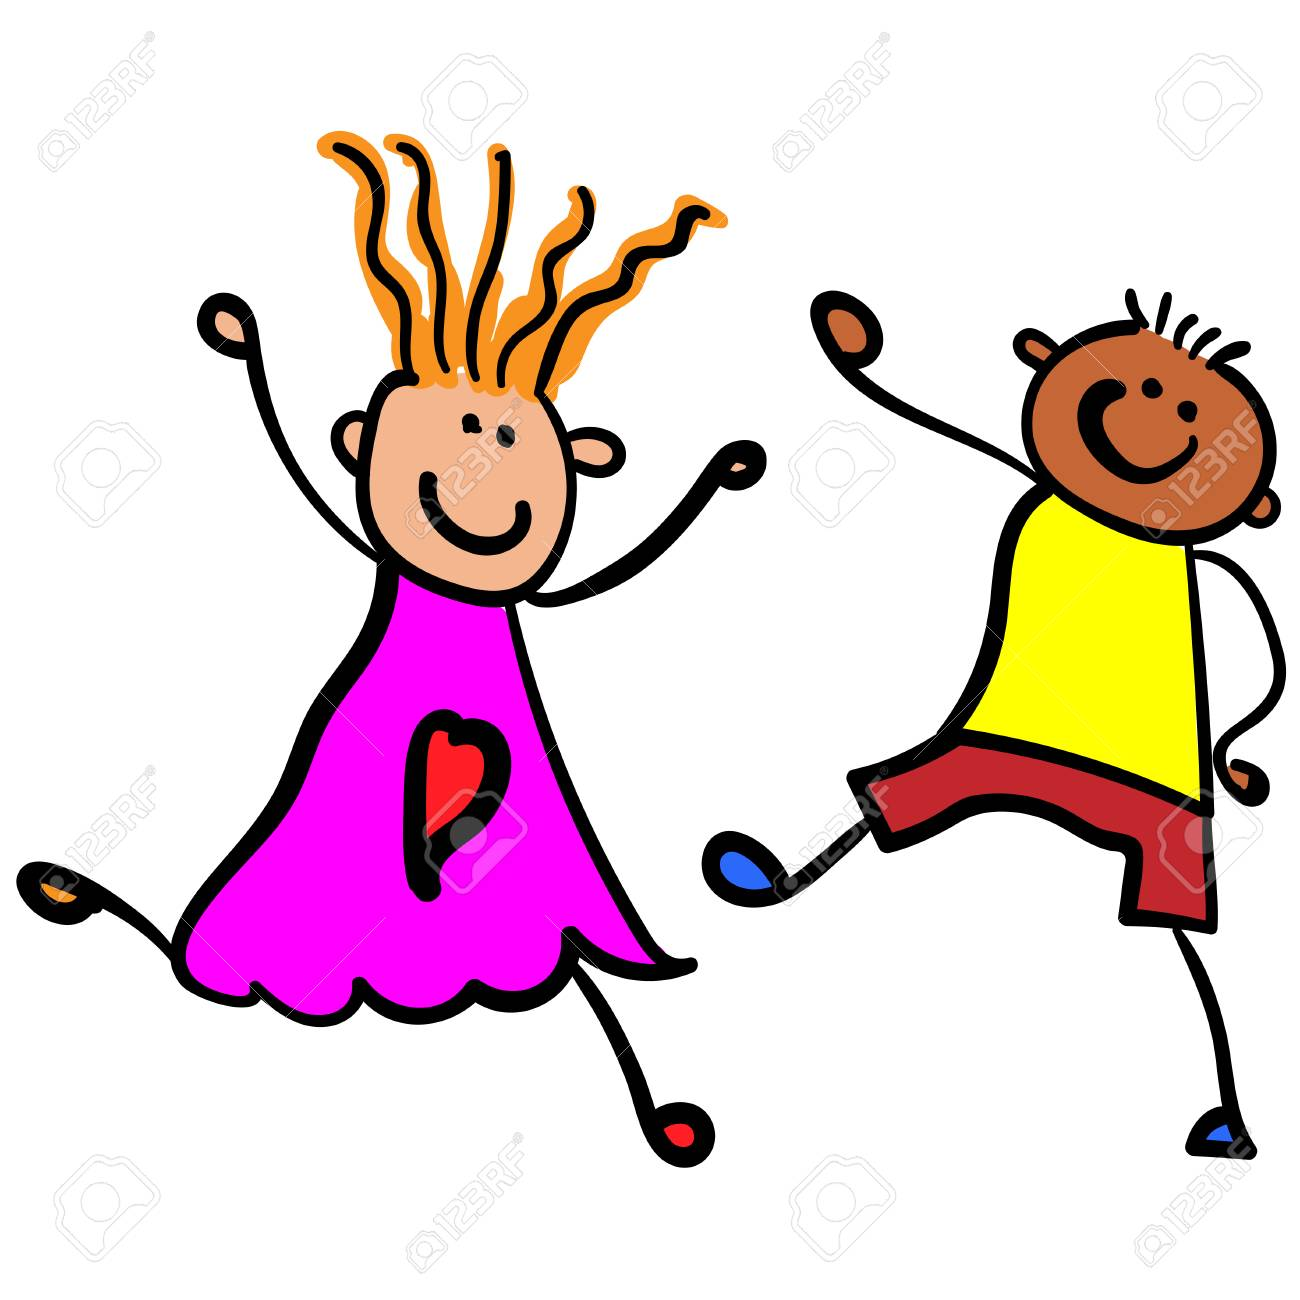 Children Playing Boy With Girl Style Of Childrens Drawing Stock Photo Picture And Royalty Free Image Image 113298406